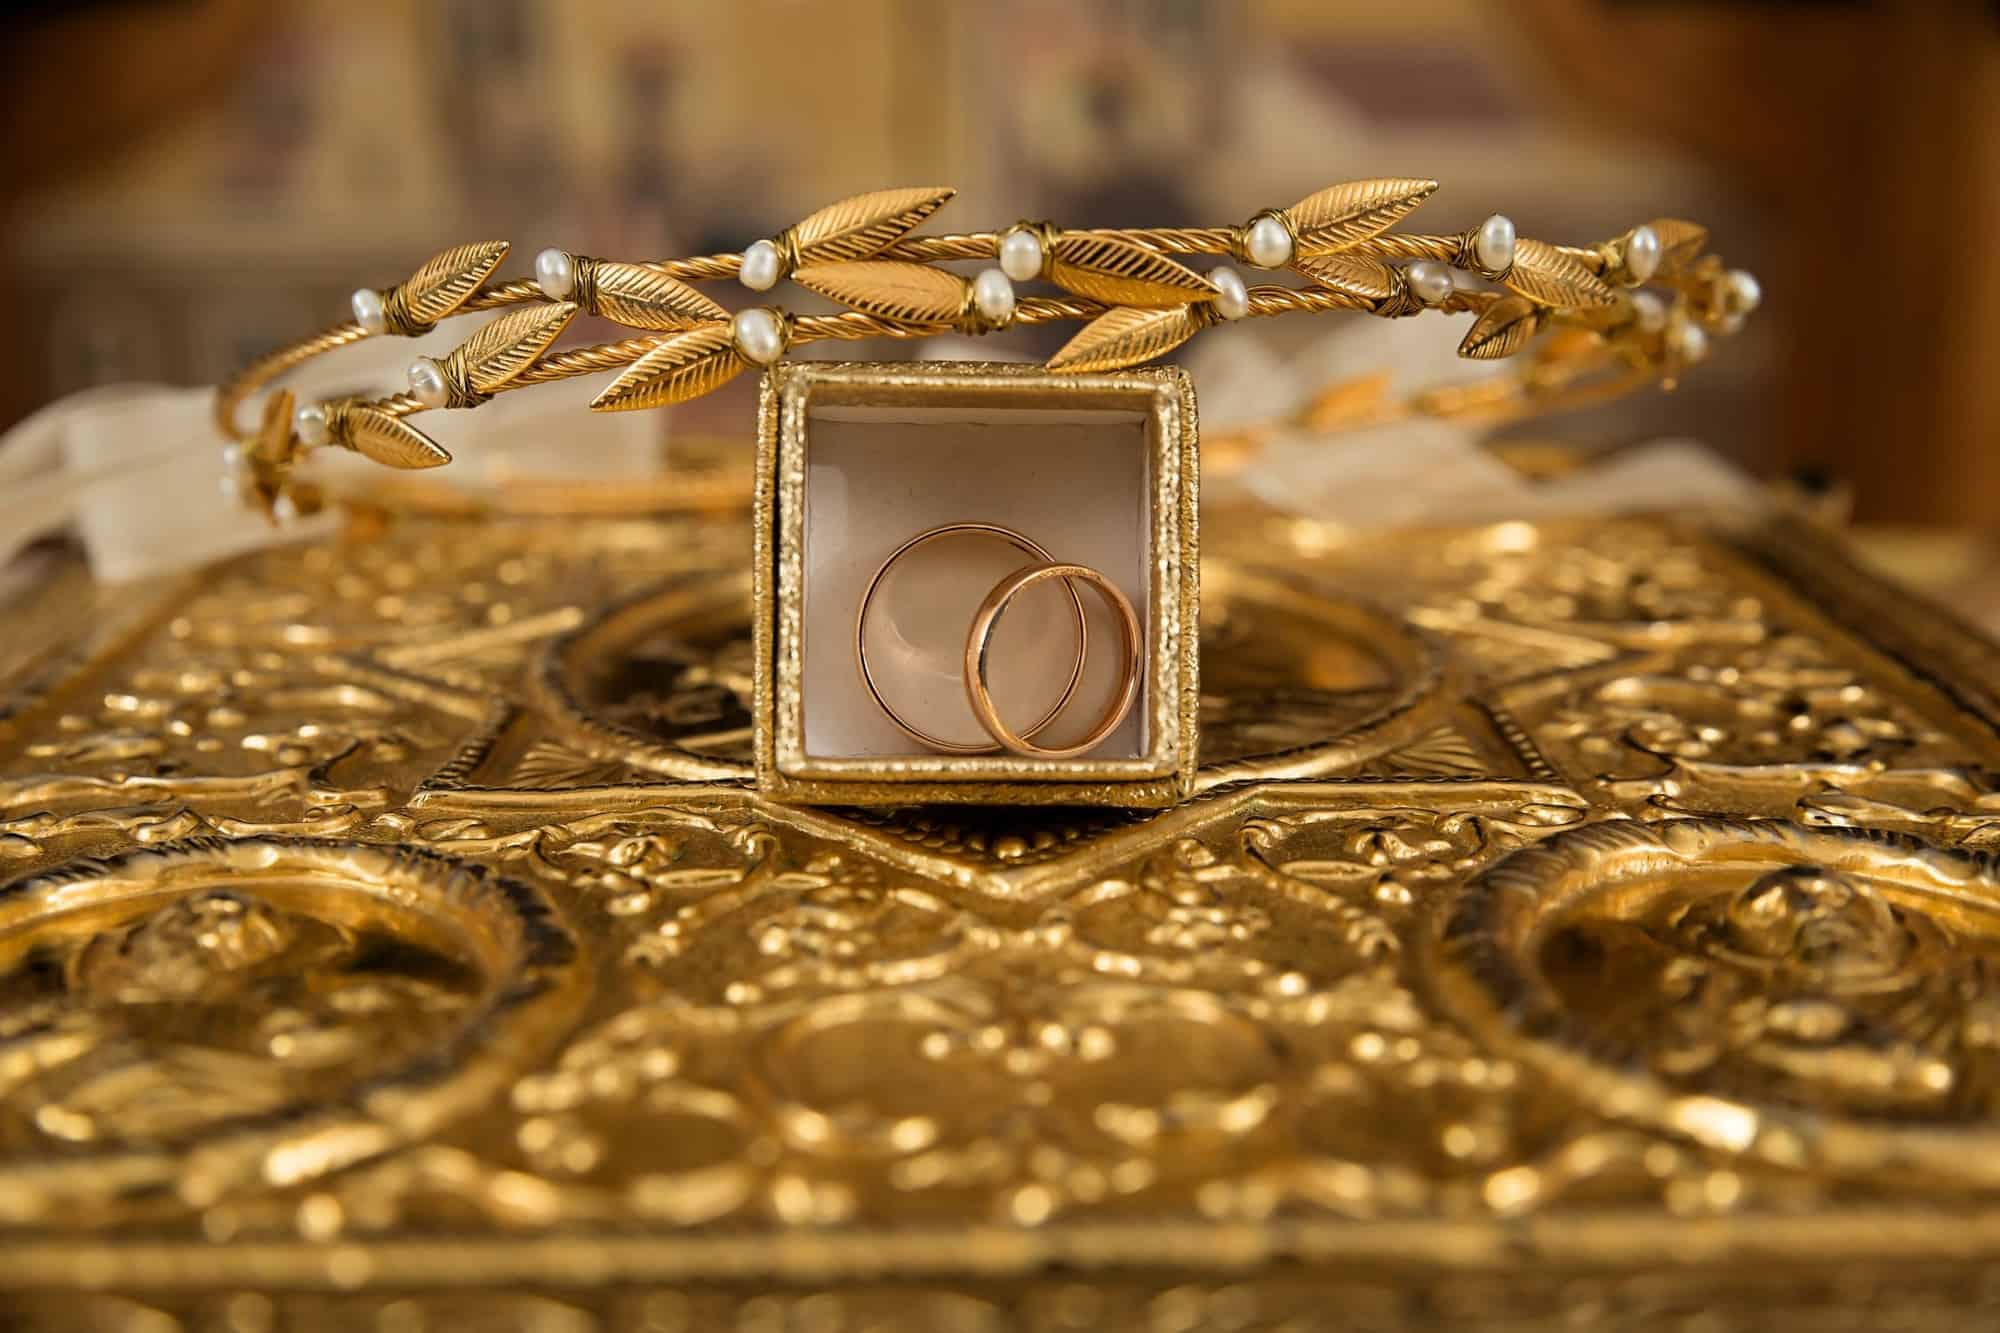 A pile of gold rings